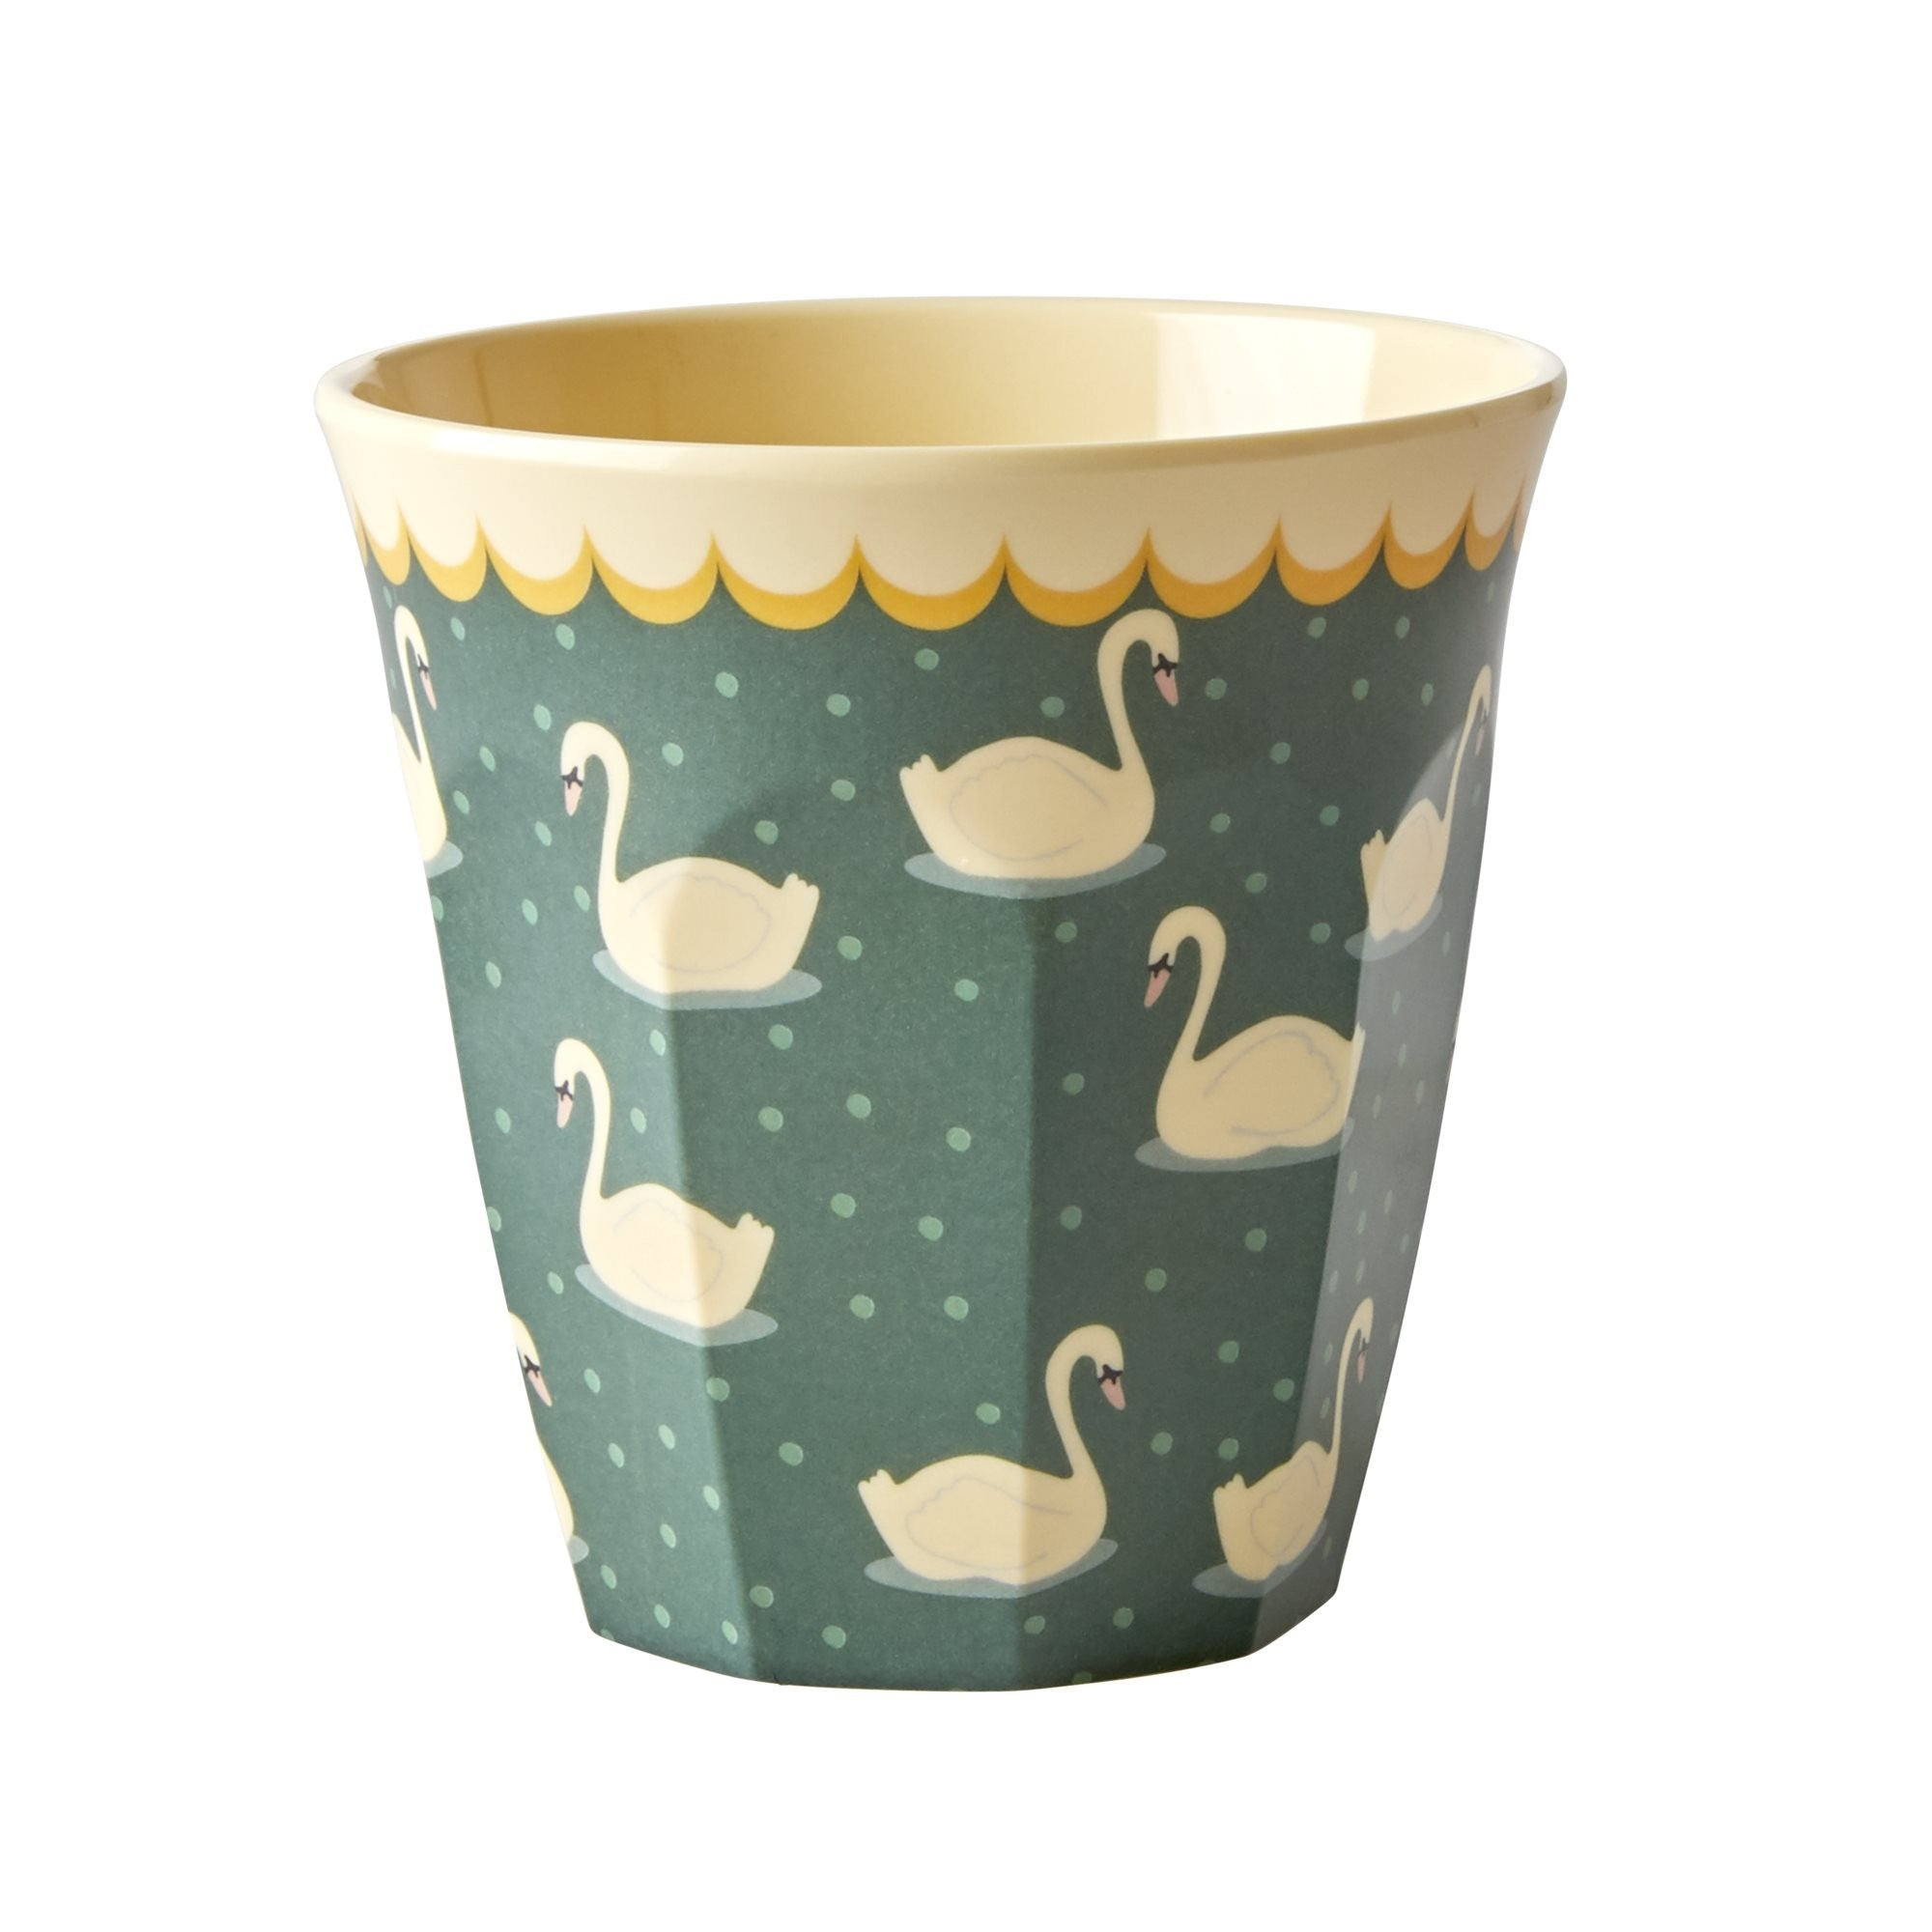 Rice DK Two-Tone Melamine Swans in a haki background Print Cup,bowl,and small bowl